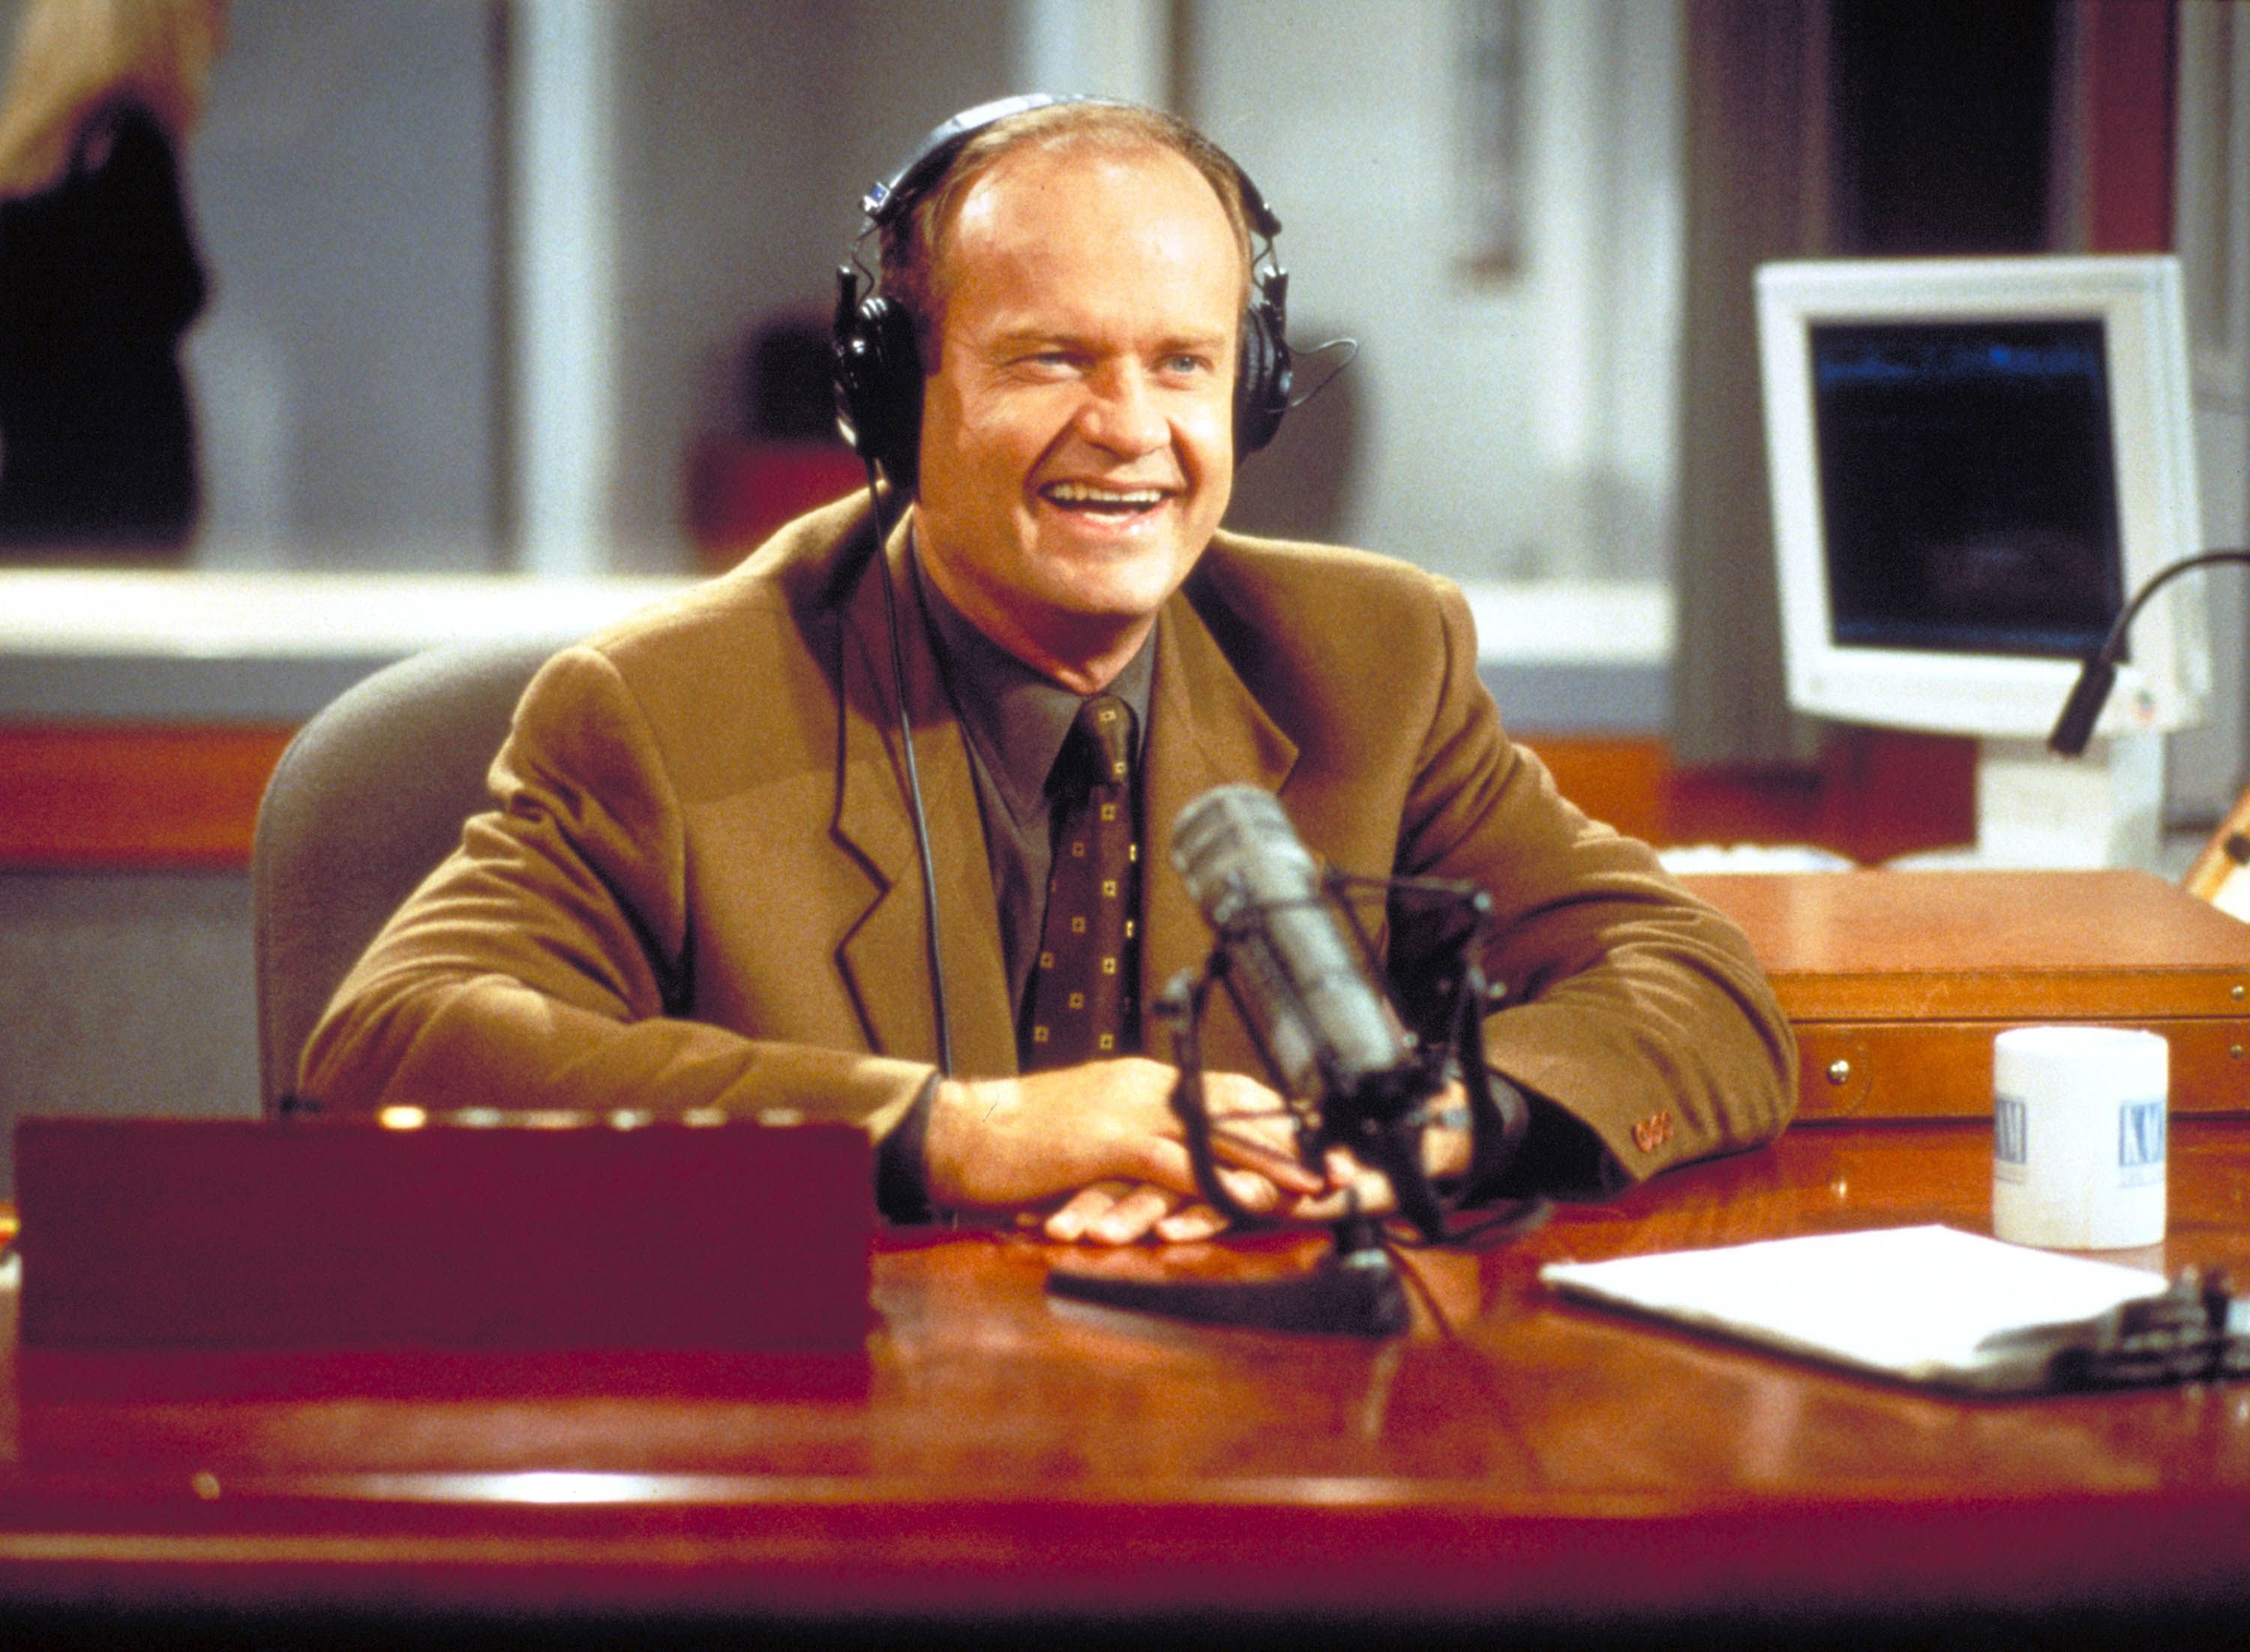 """Kelsey Grammer as Frasier Crane in NBC's 90s television comedy series """"Frasier"""" 